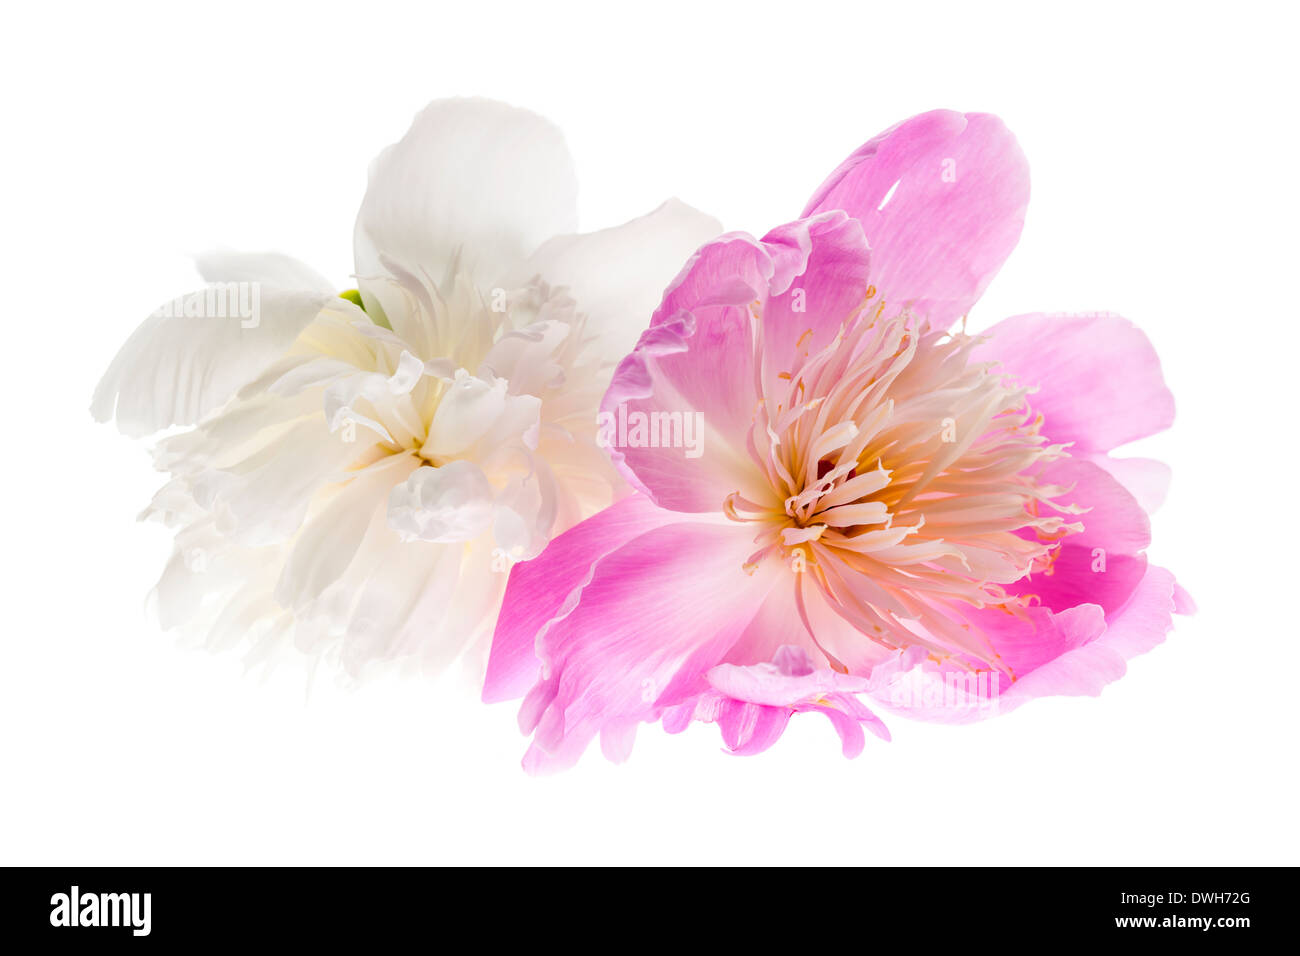 Two peony flowers isolated on white background - Stock Image